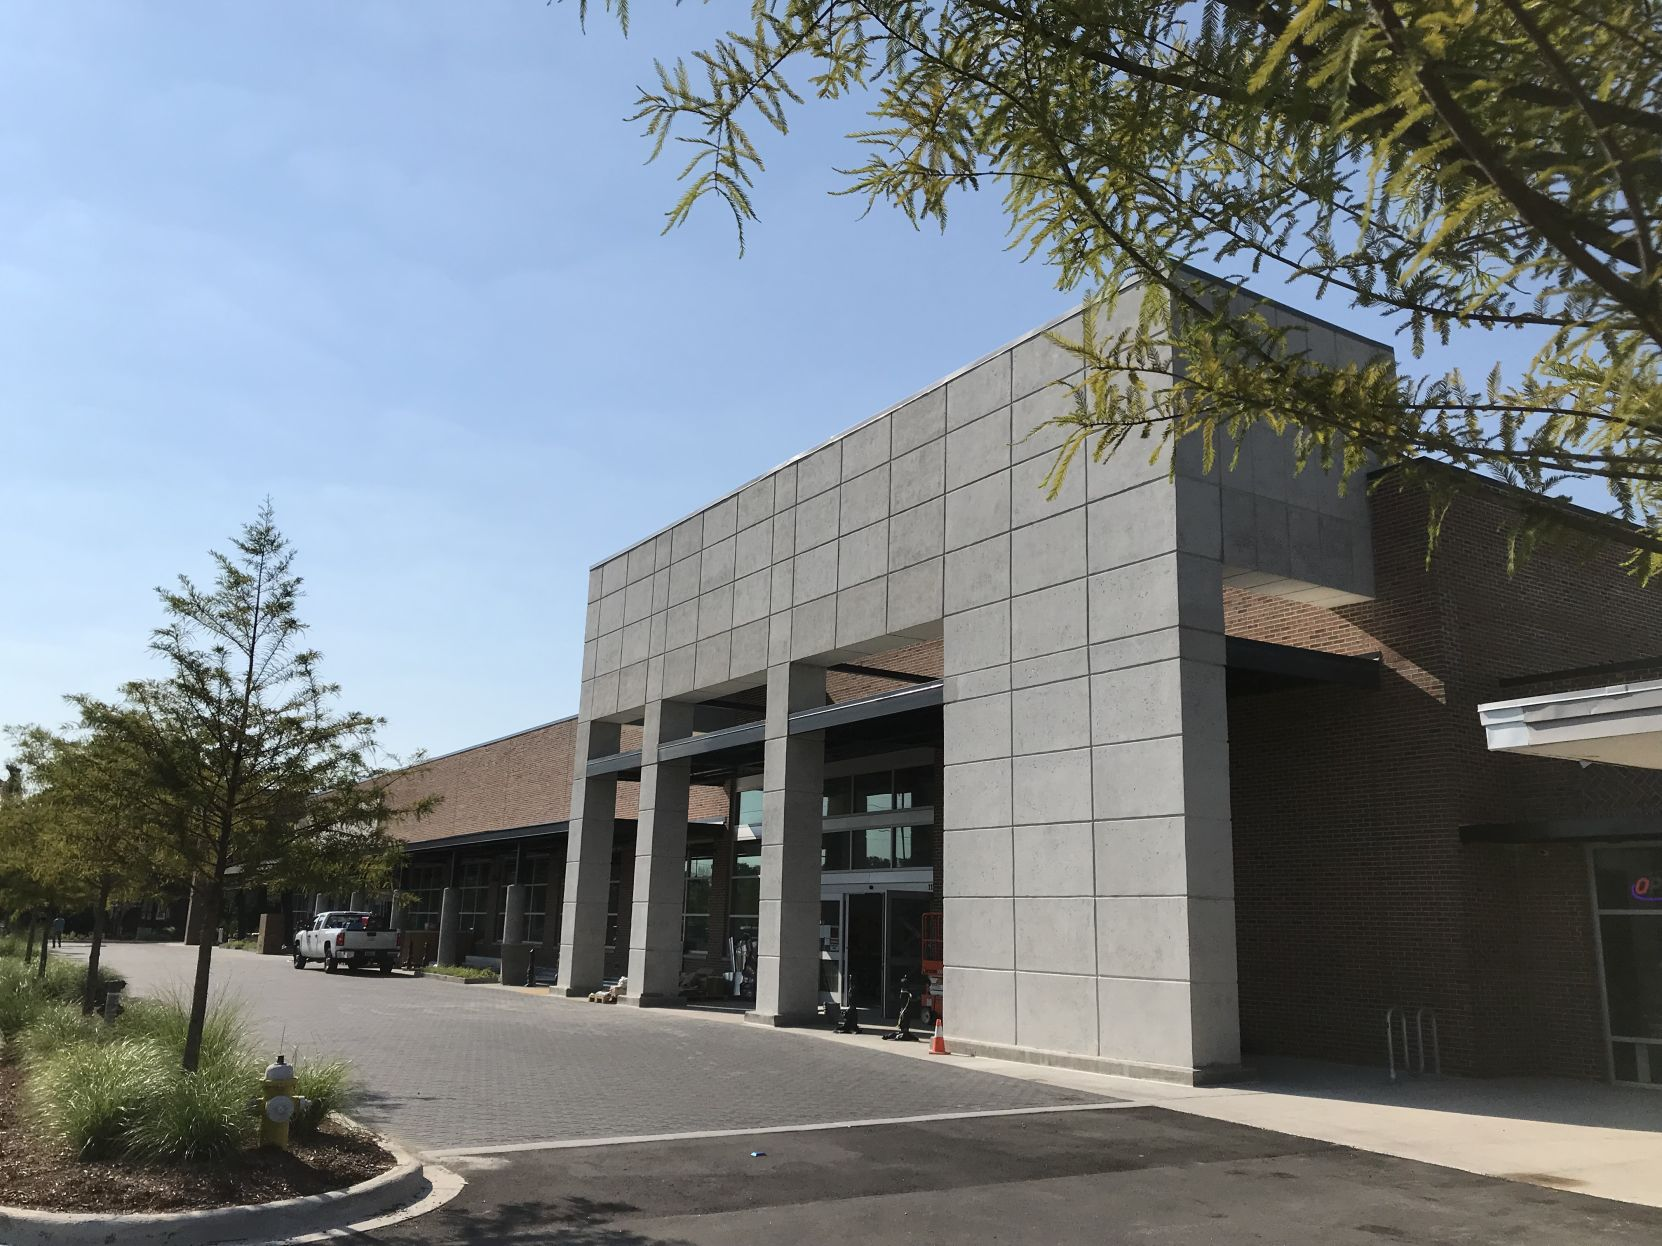 Whole Foods Market in West Ashley | Post and Courier